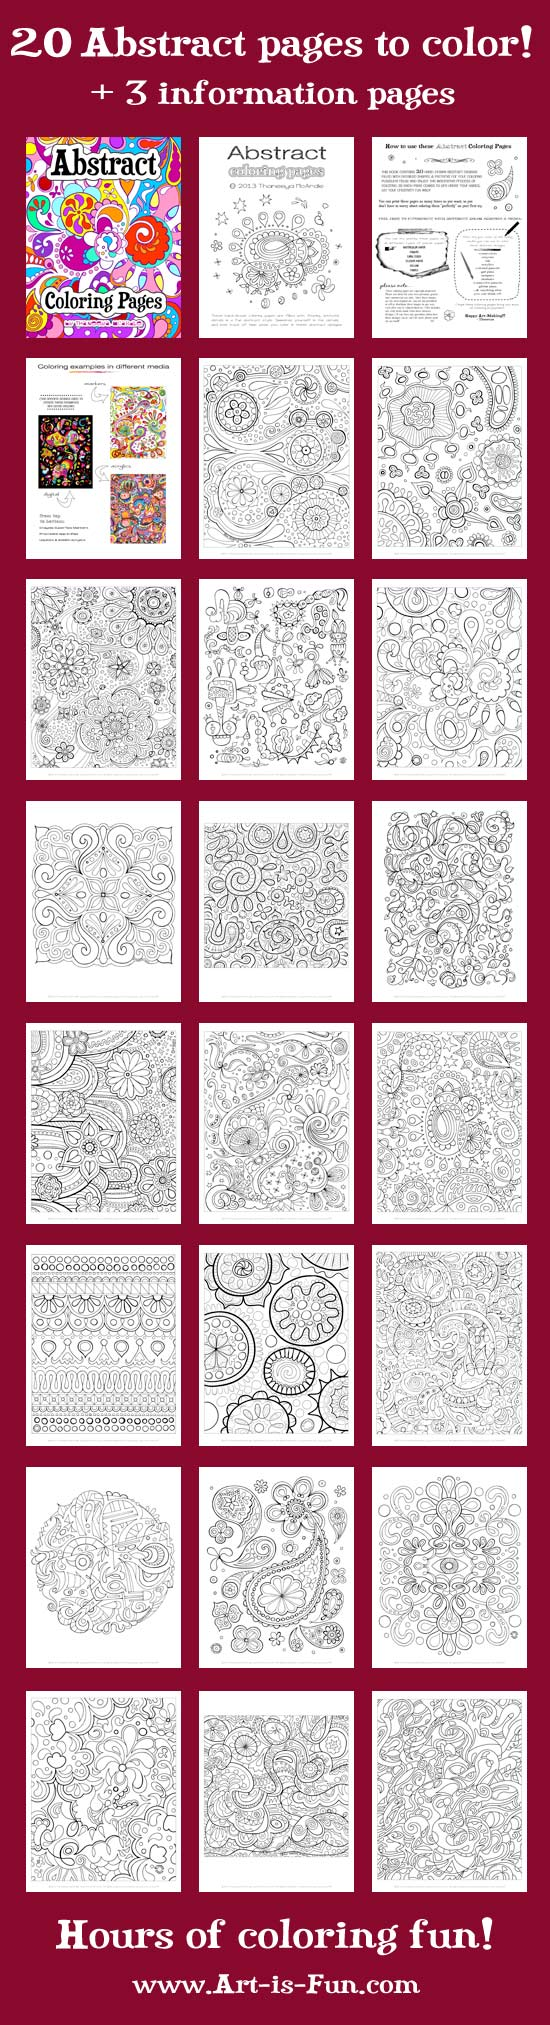 Free Abstract Coloring Page To Print: Detailed, Psychedelic